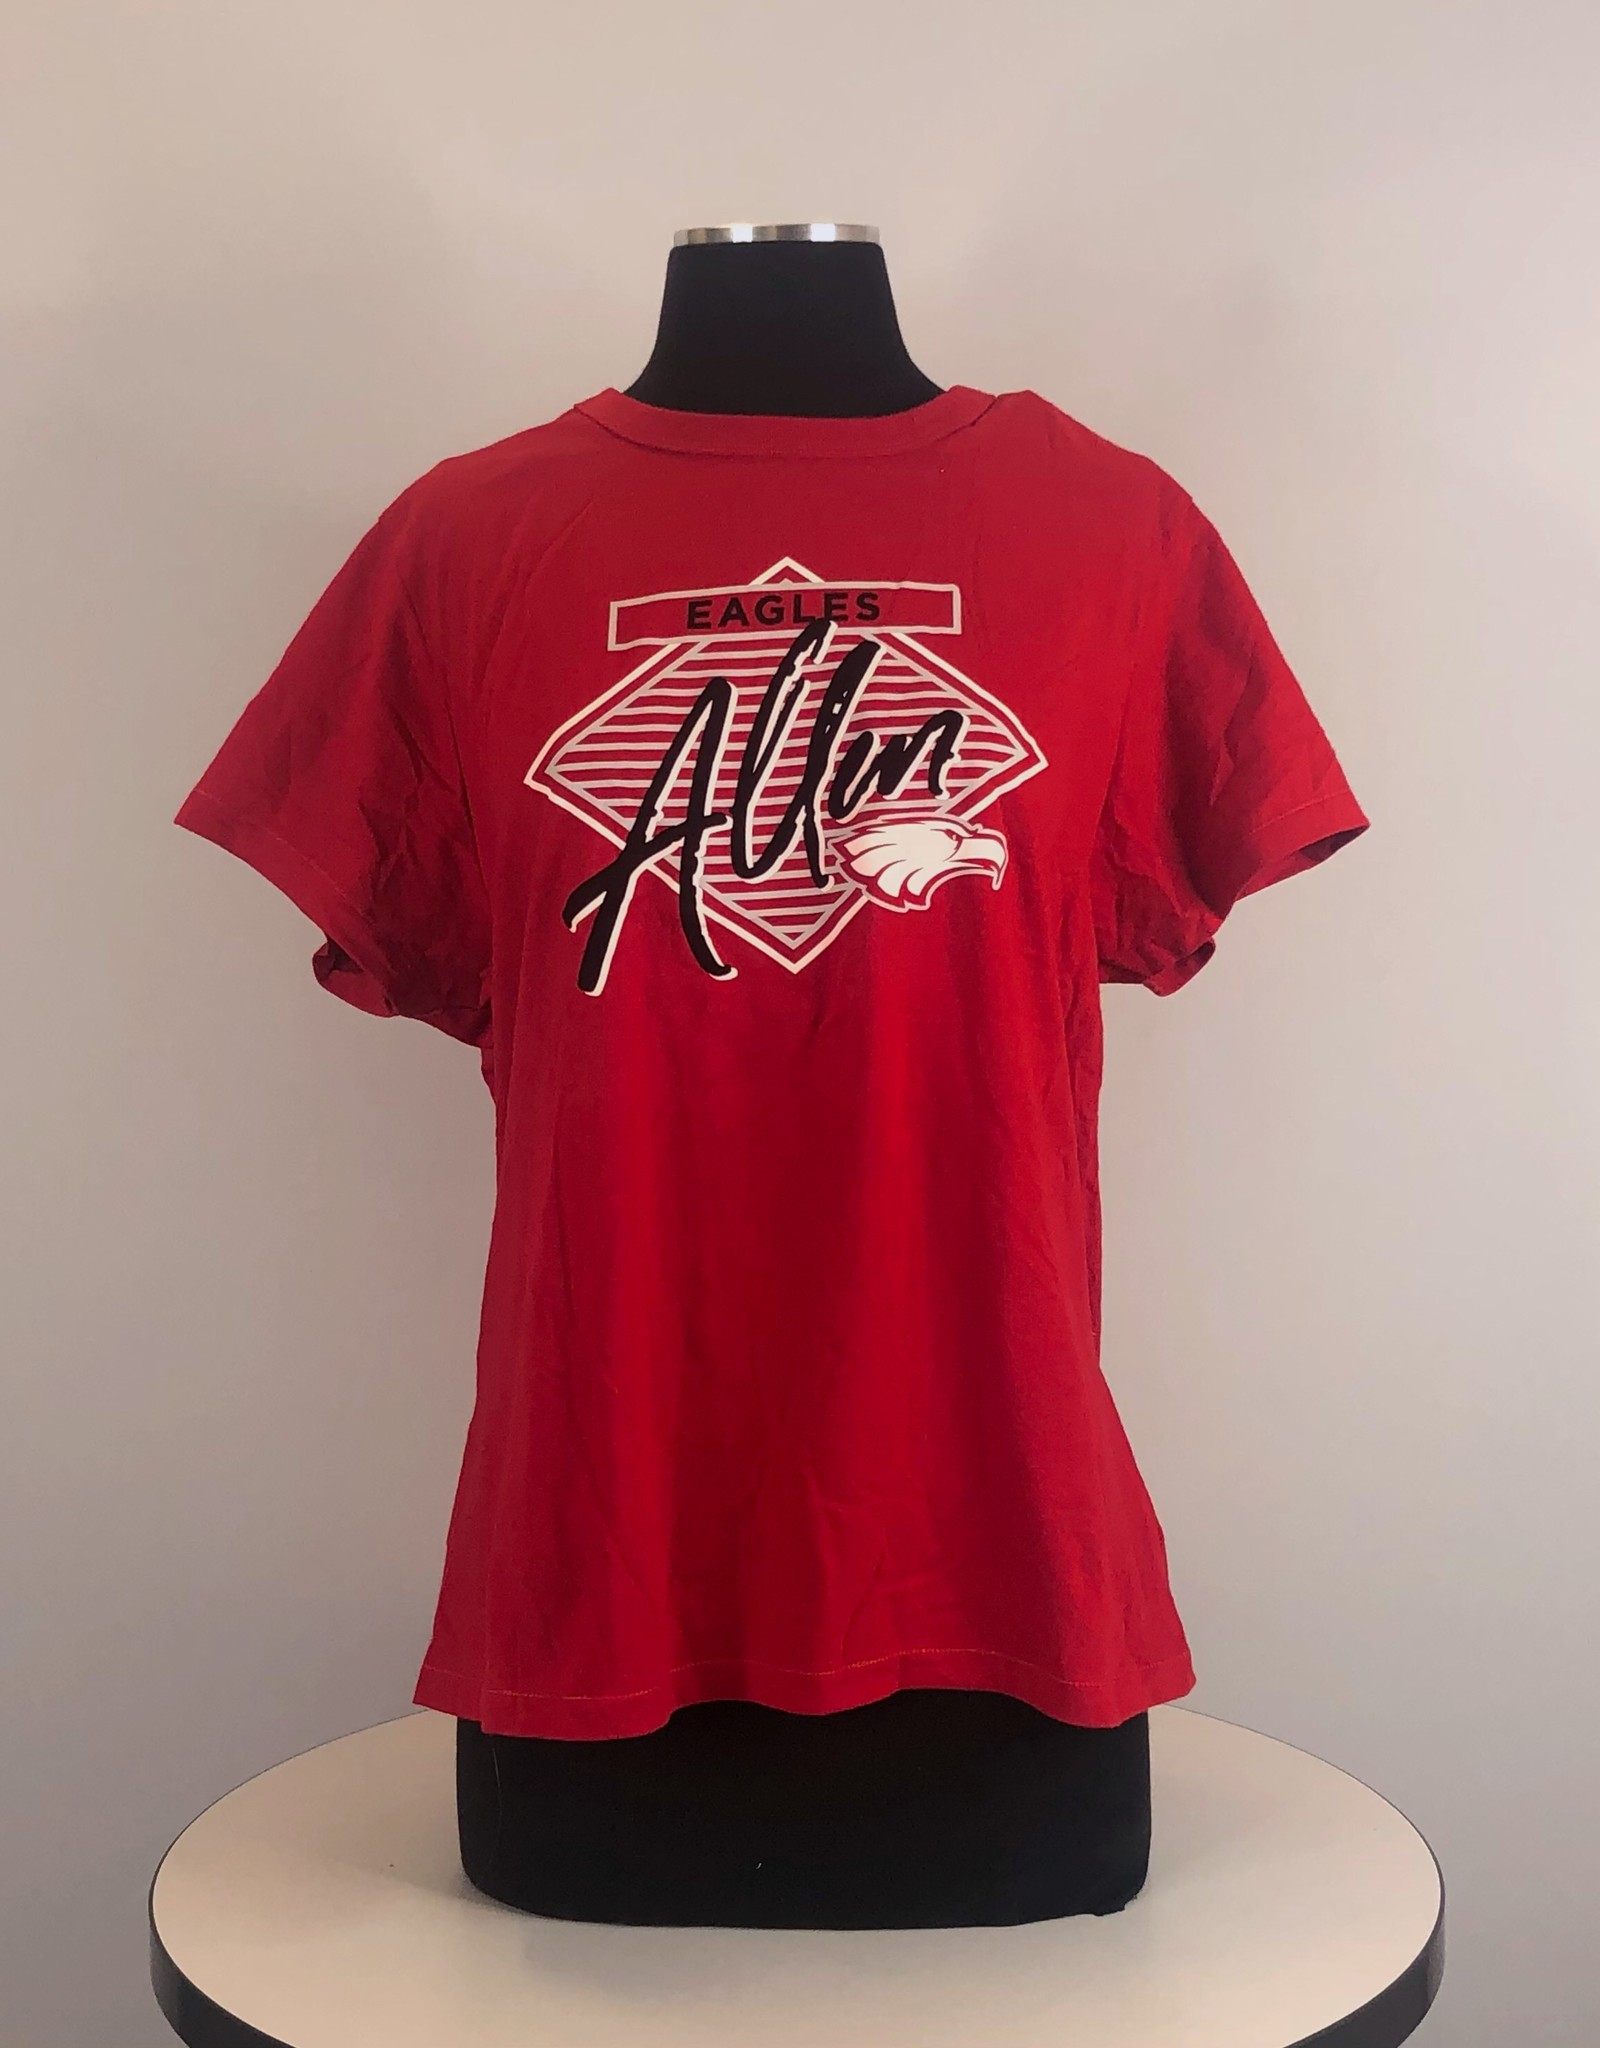 L2 Brands Re-Spin Tee